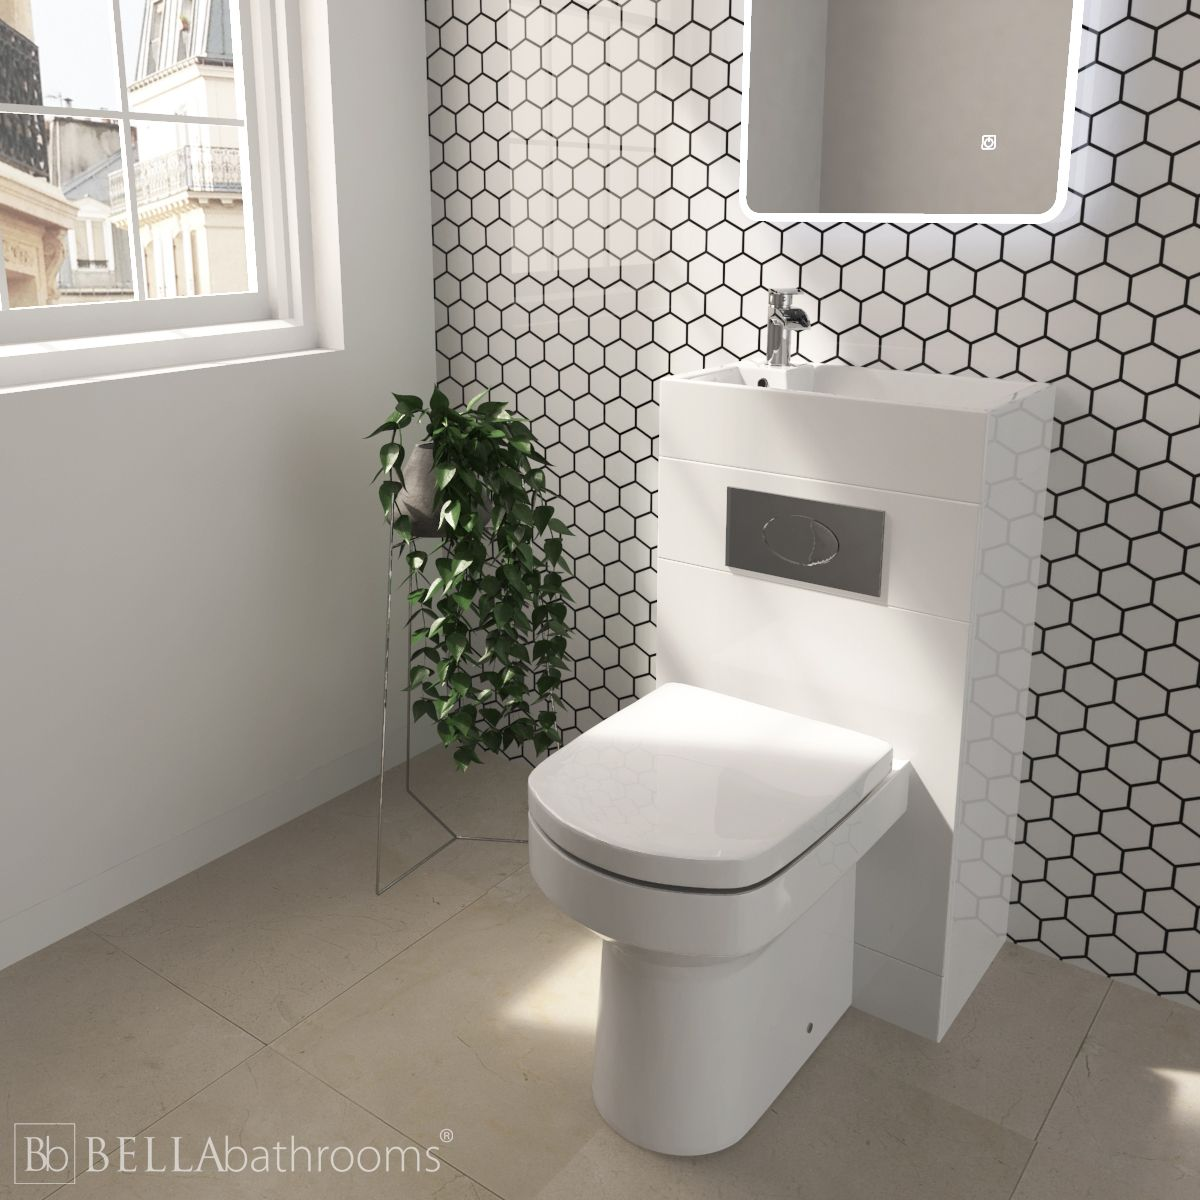 Cassellie Futura Gloss White Space Saving Toilet with Sink on Top 500mm